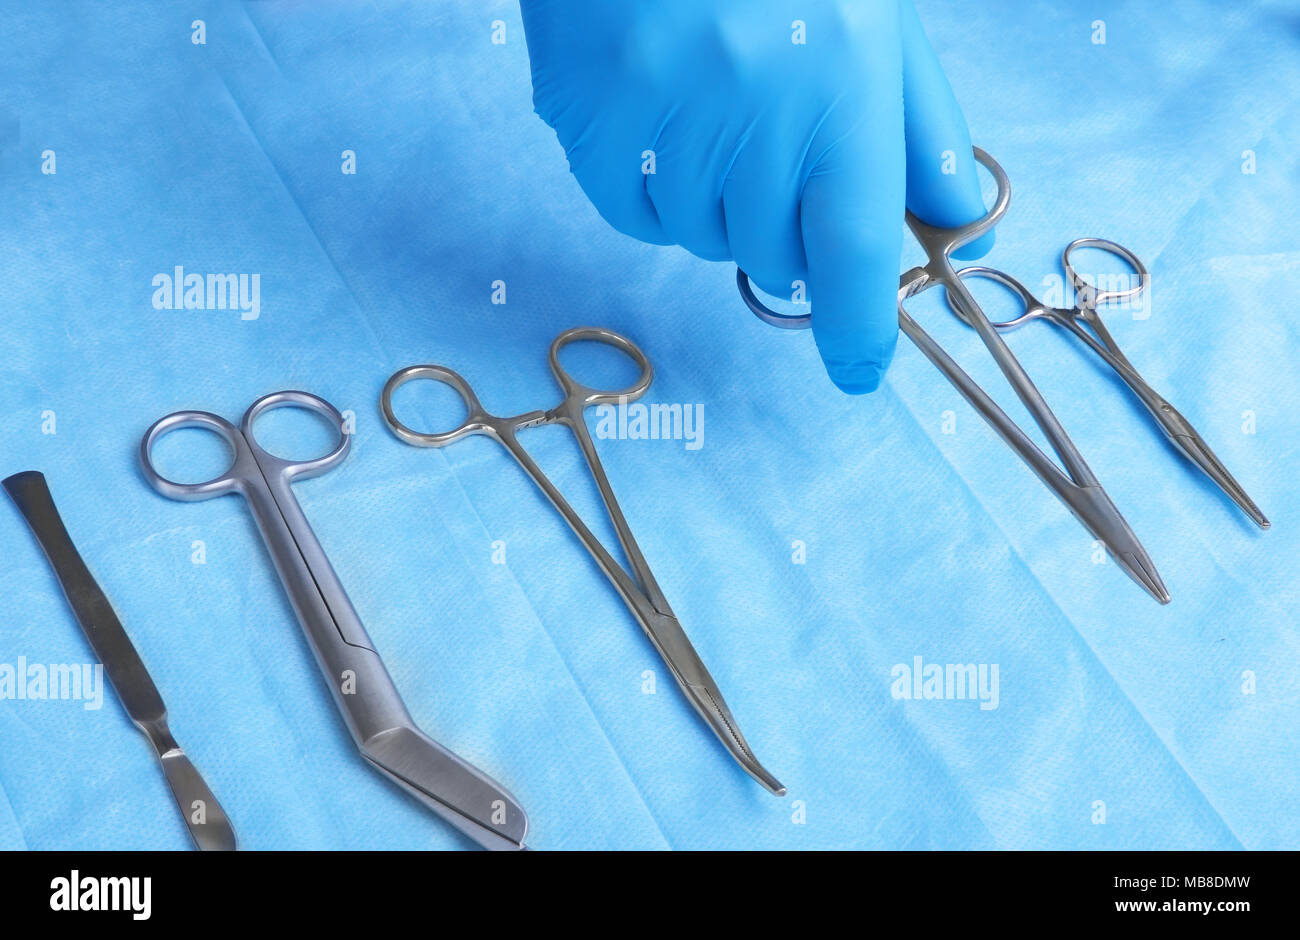 Detail shot of sterilized surgery instruments with a hand grabbing a tool - Stock Image